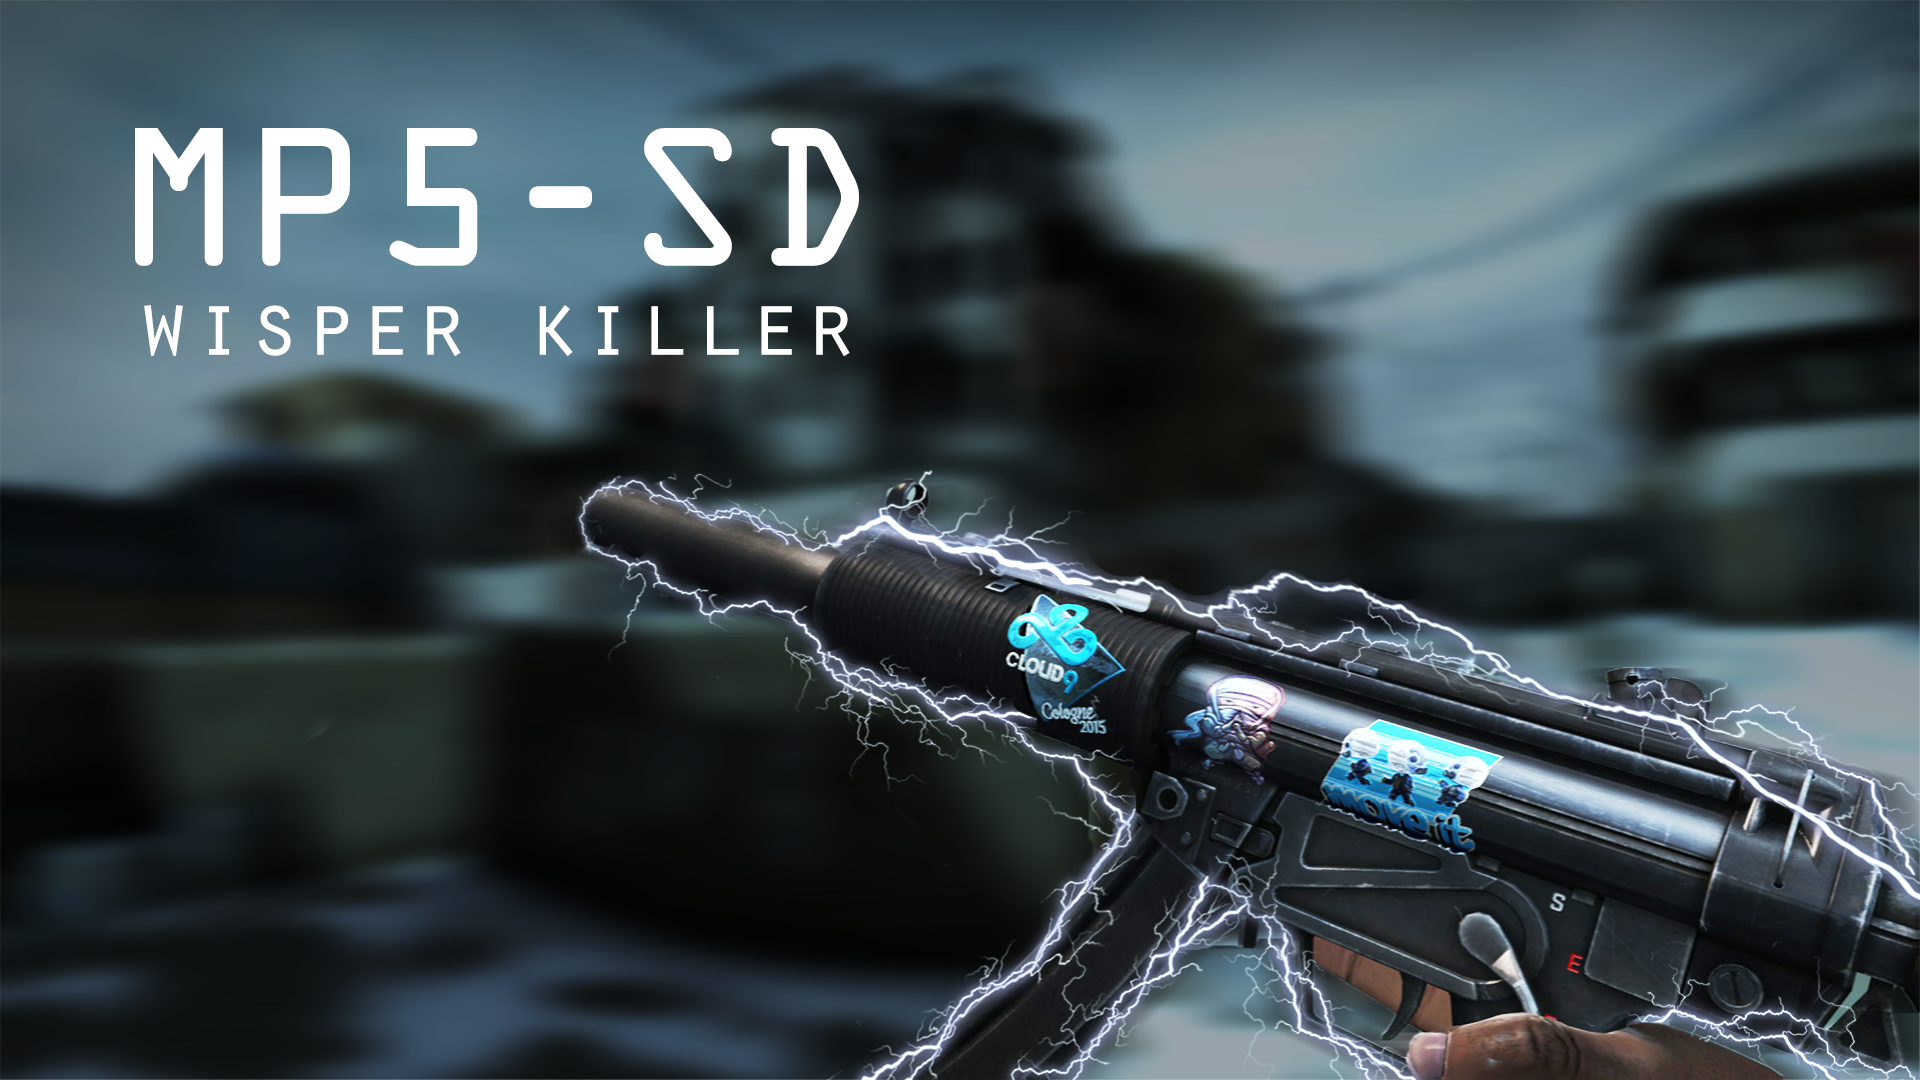 MP5-SD l Whisper Killer